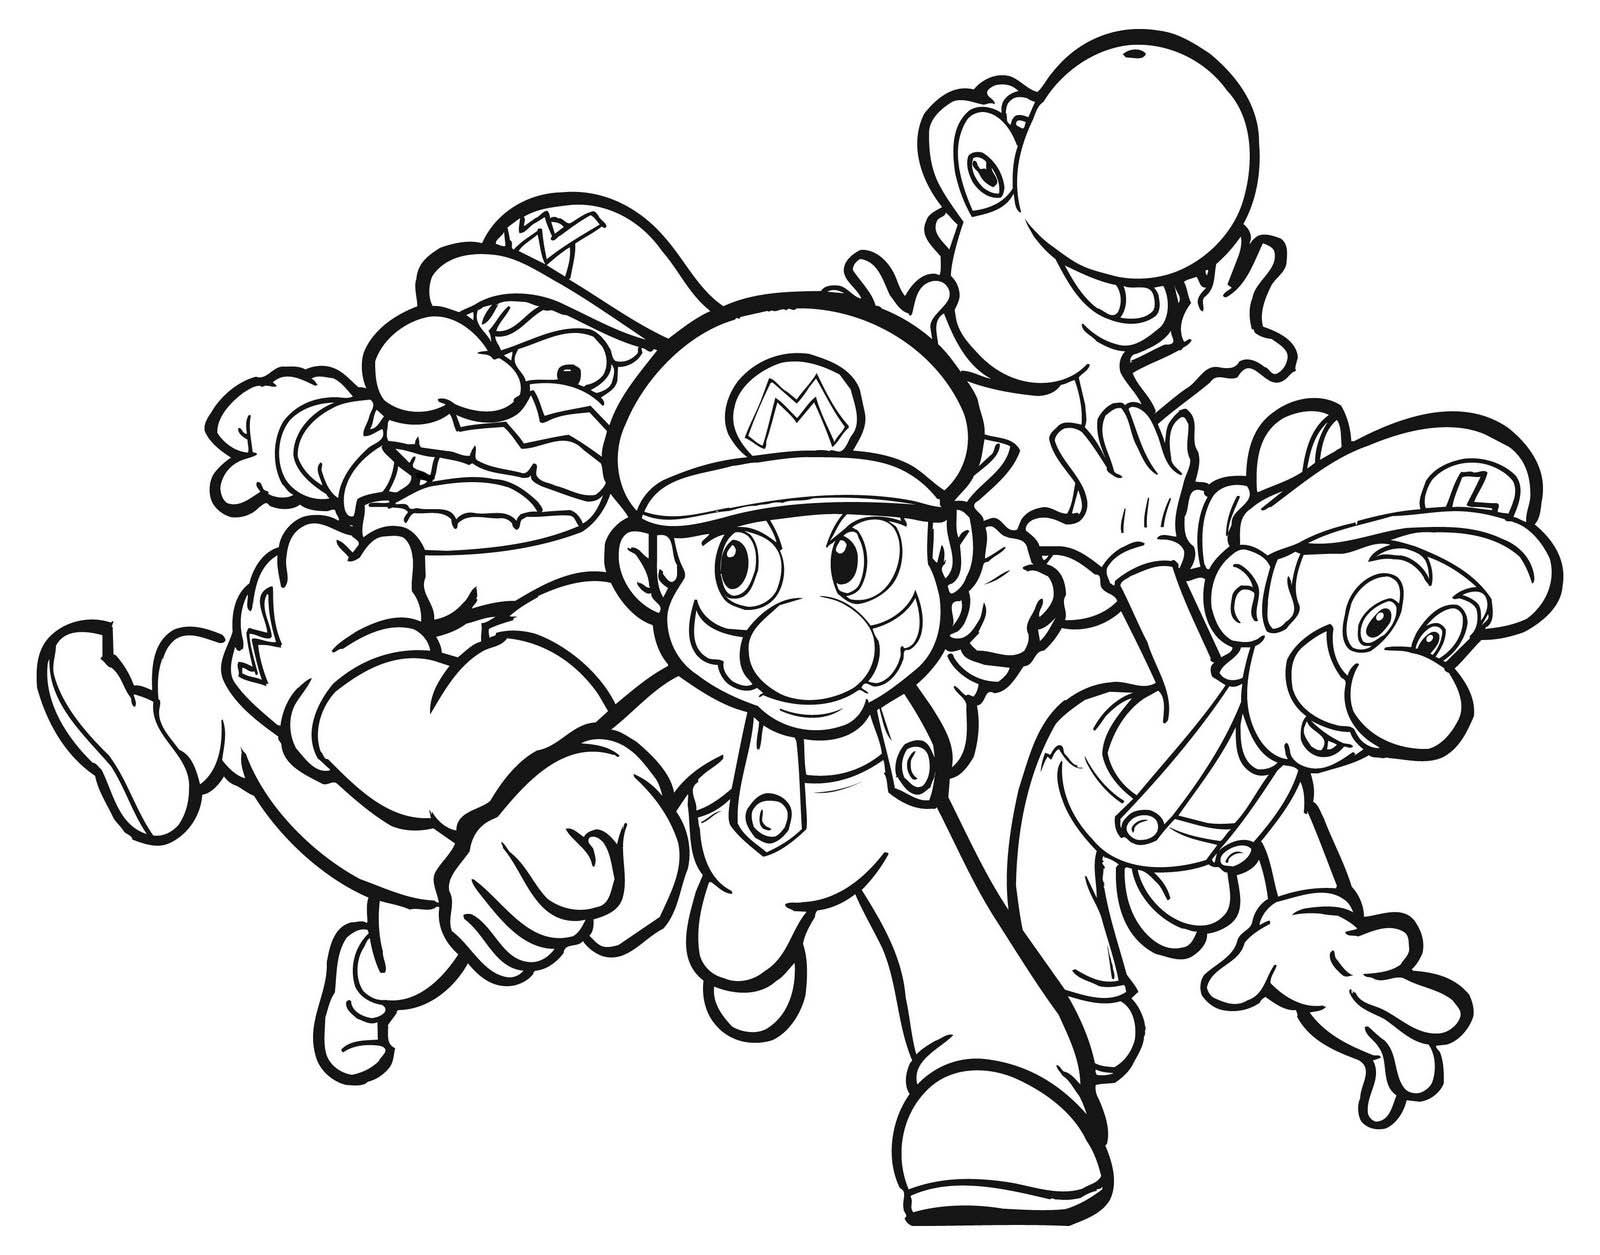 free printable coloring pages of mario free printable coloring pages of mario and luigi free printable coloring pages of mario characters